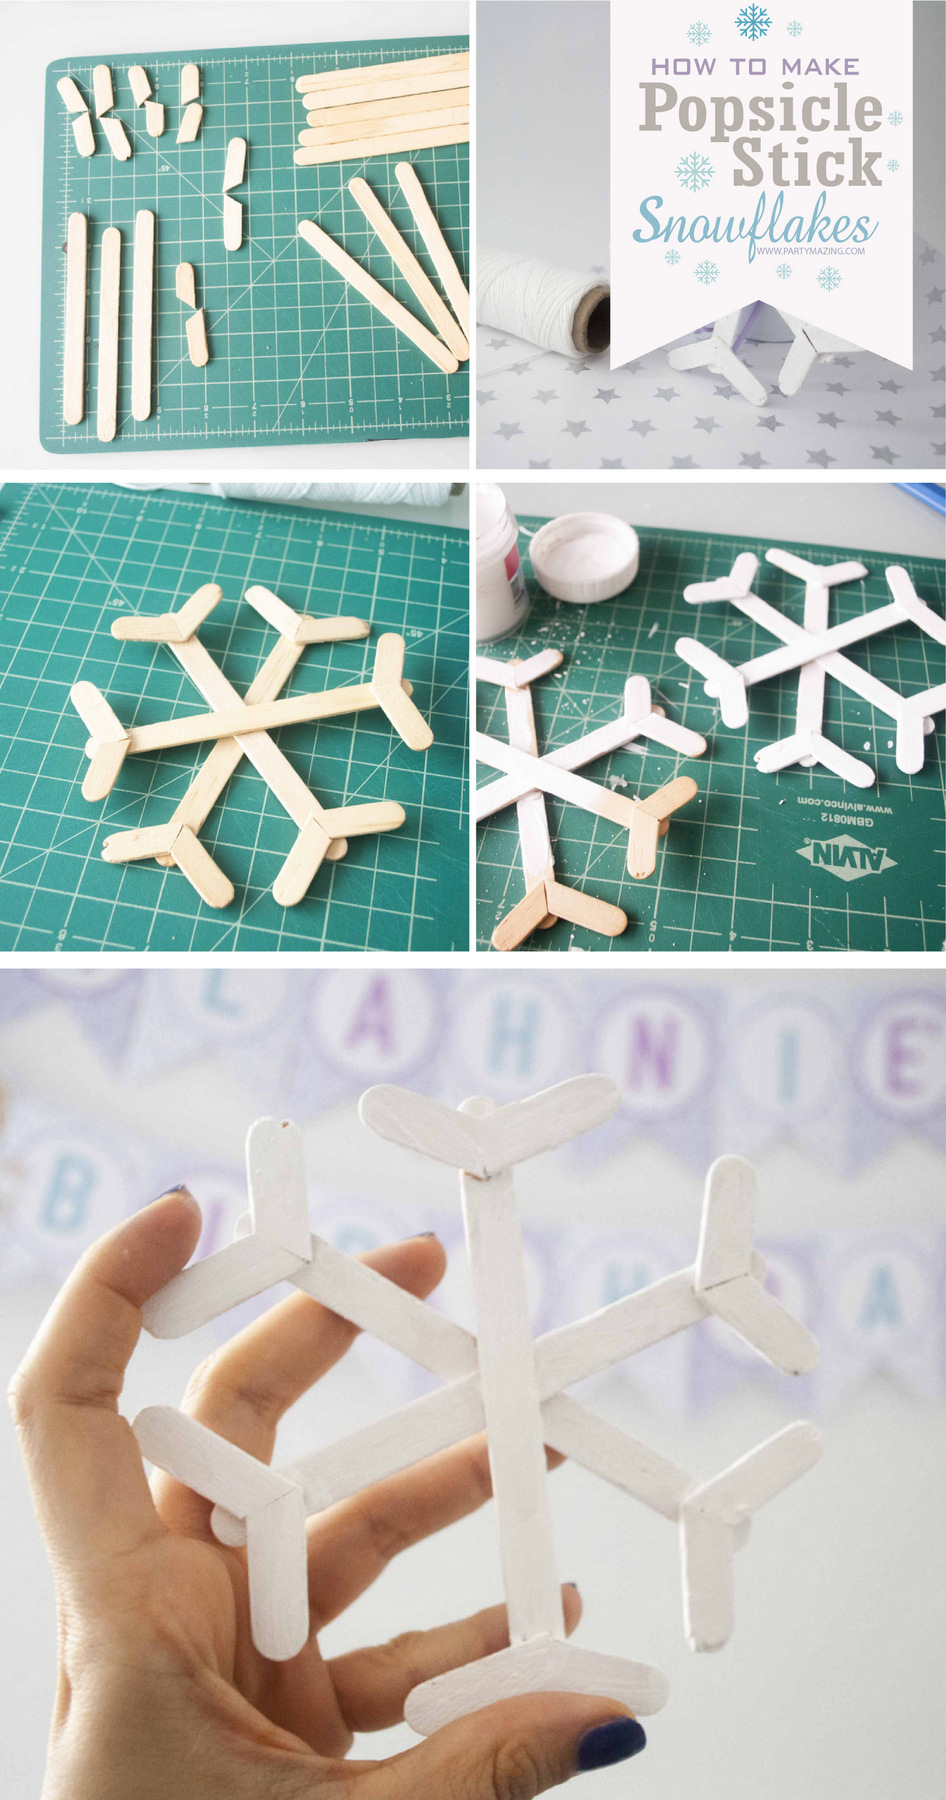 How to make Popsicle Stick Snowflakes Promo